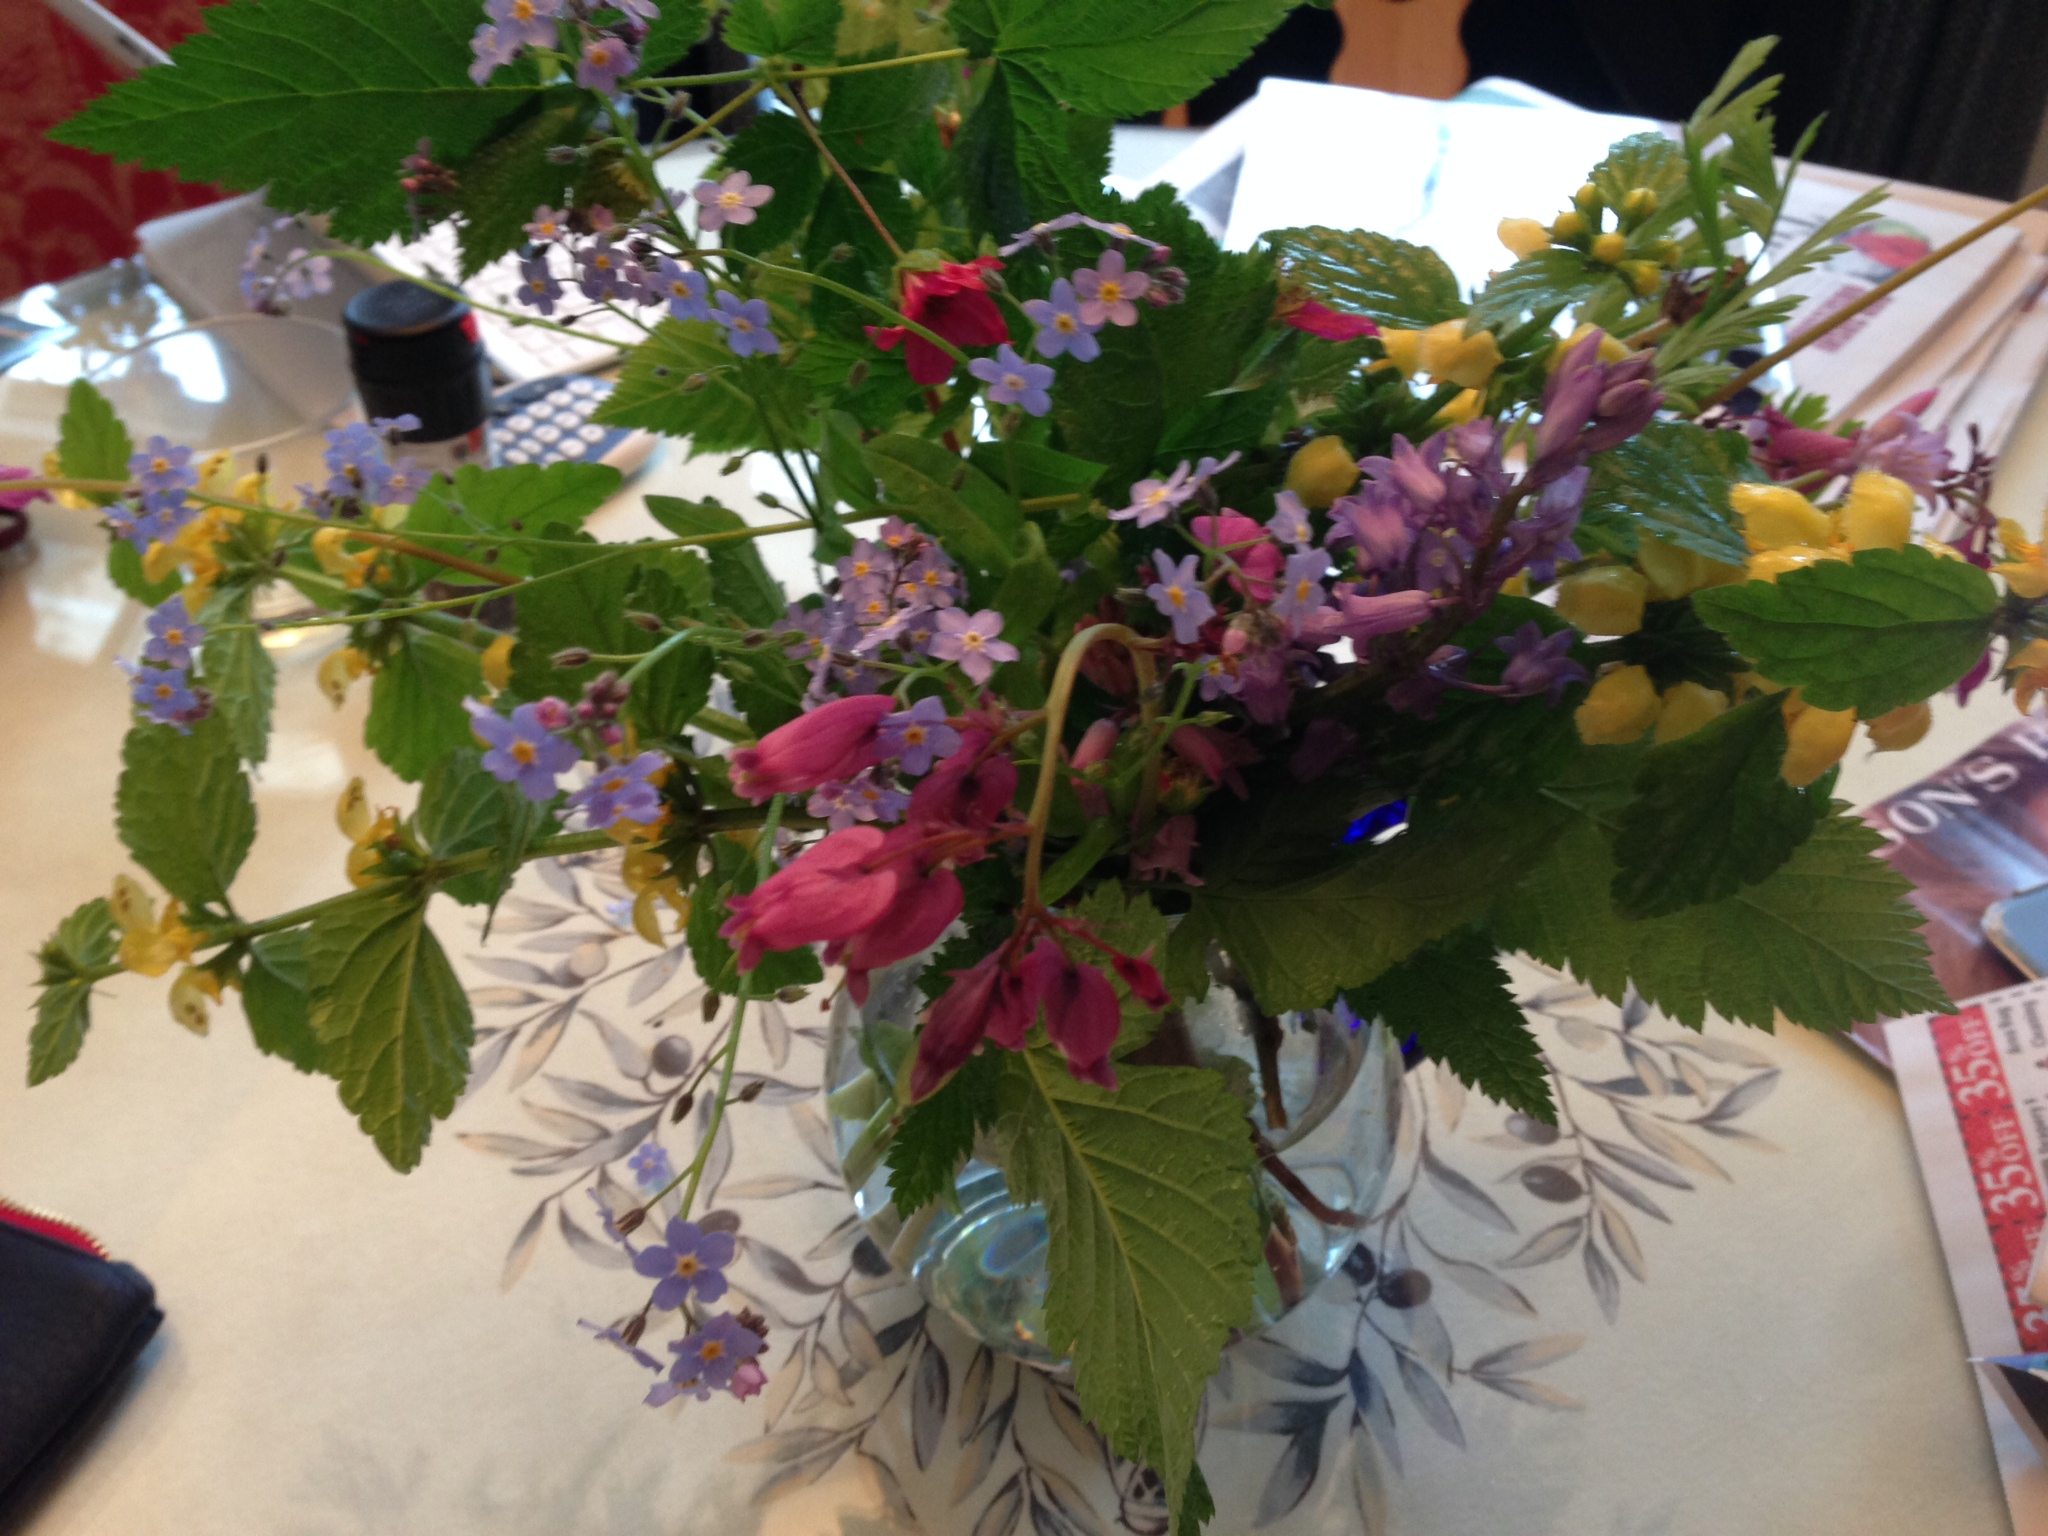 Mothers day hand picked bouquet  of spring flowrs picked by a daughter for her mum